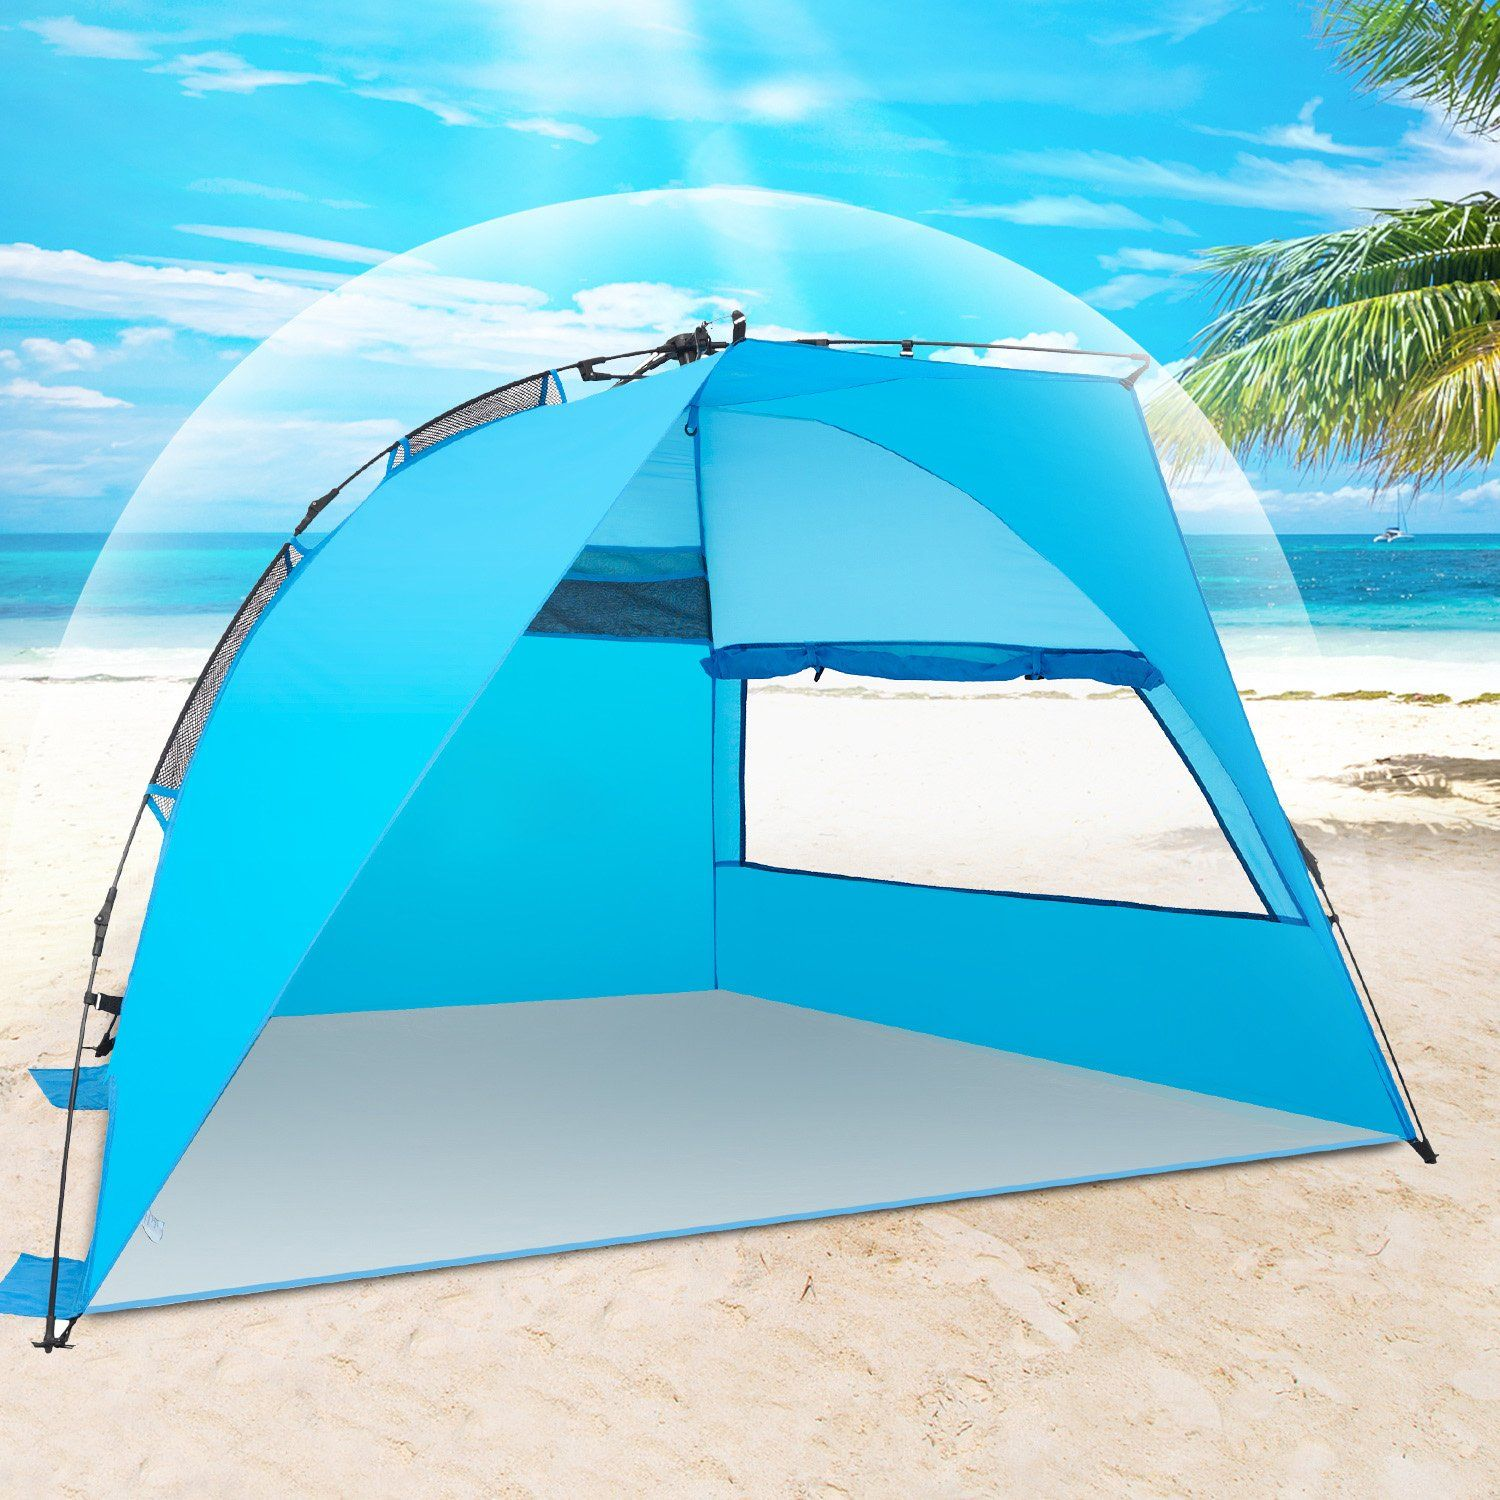 4a0289a8f2d2 Outdoor Camping · Picnics · Amagoing Instant Beach Tent 4 People Tent Sun  Shelter Family Beach Tent for Outdoor Hiking Fishing